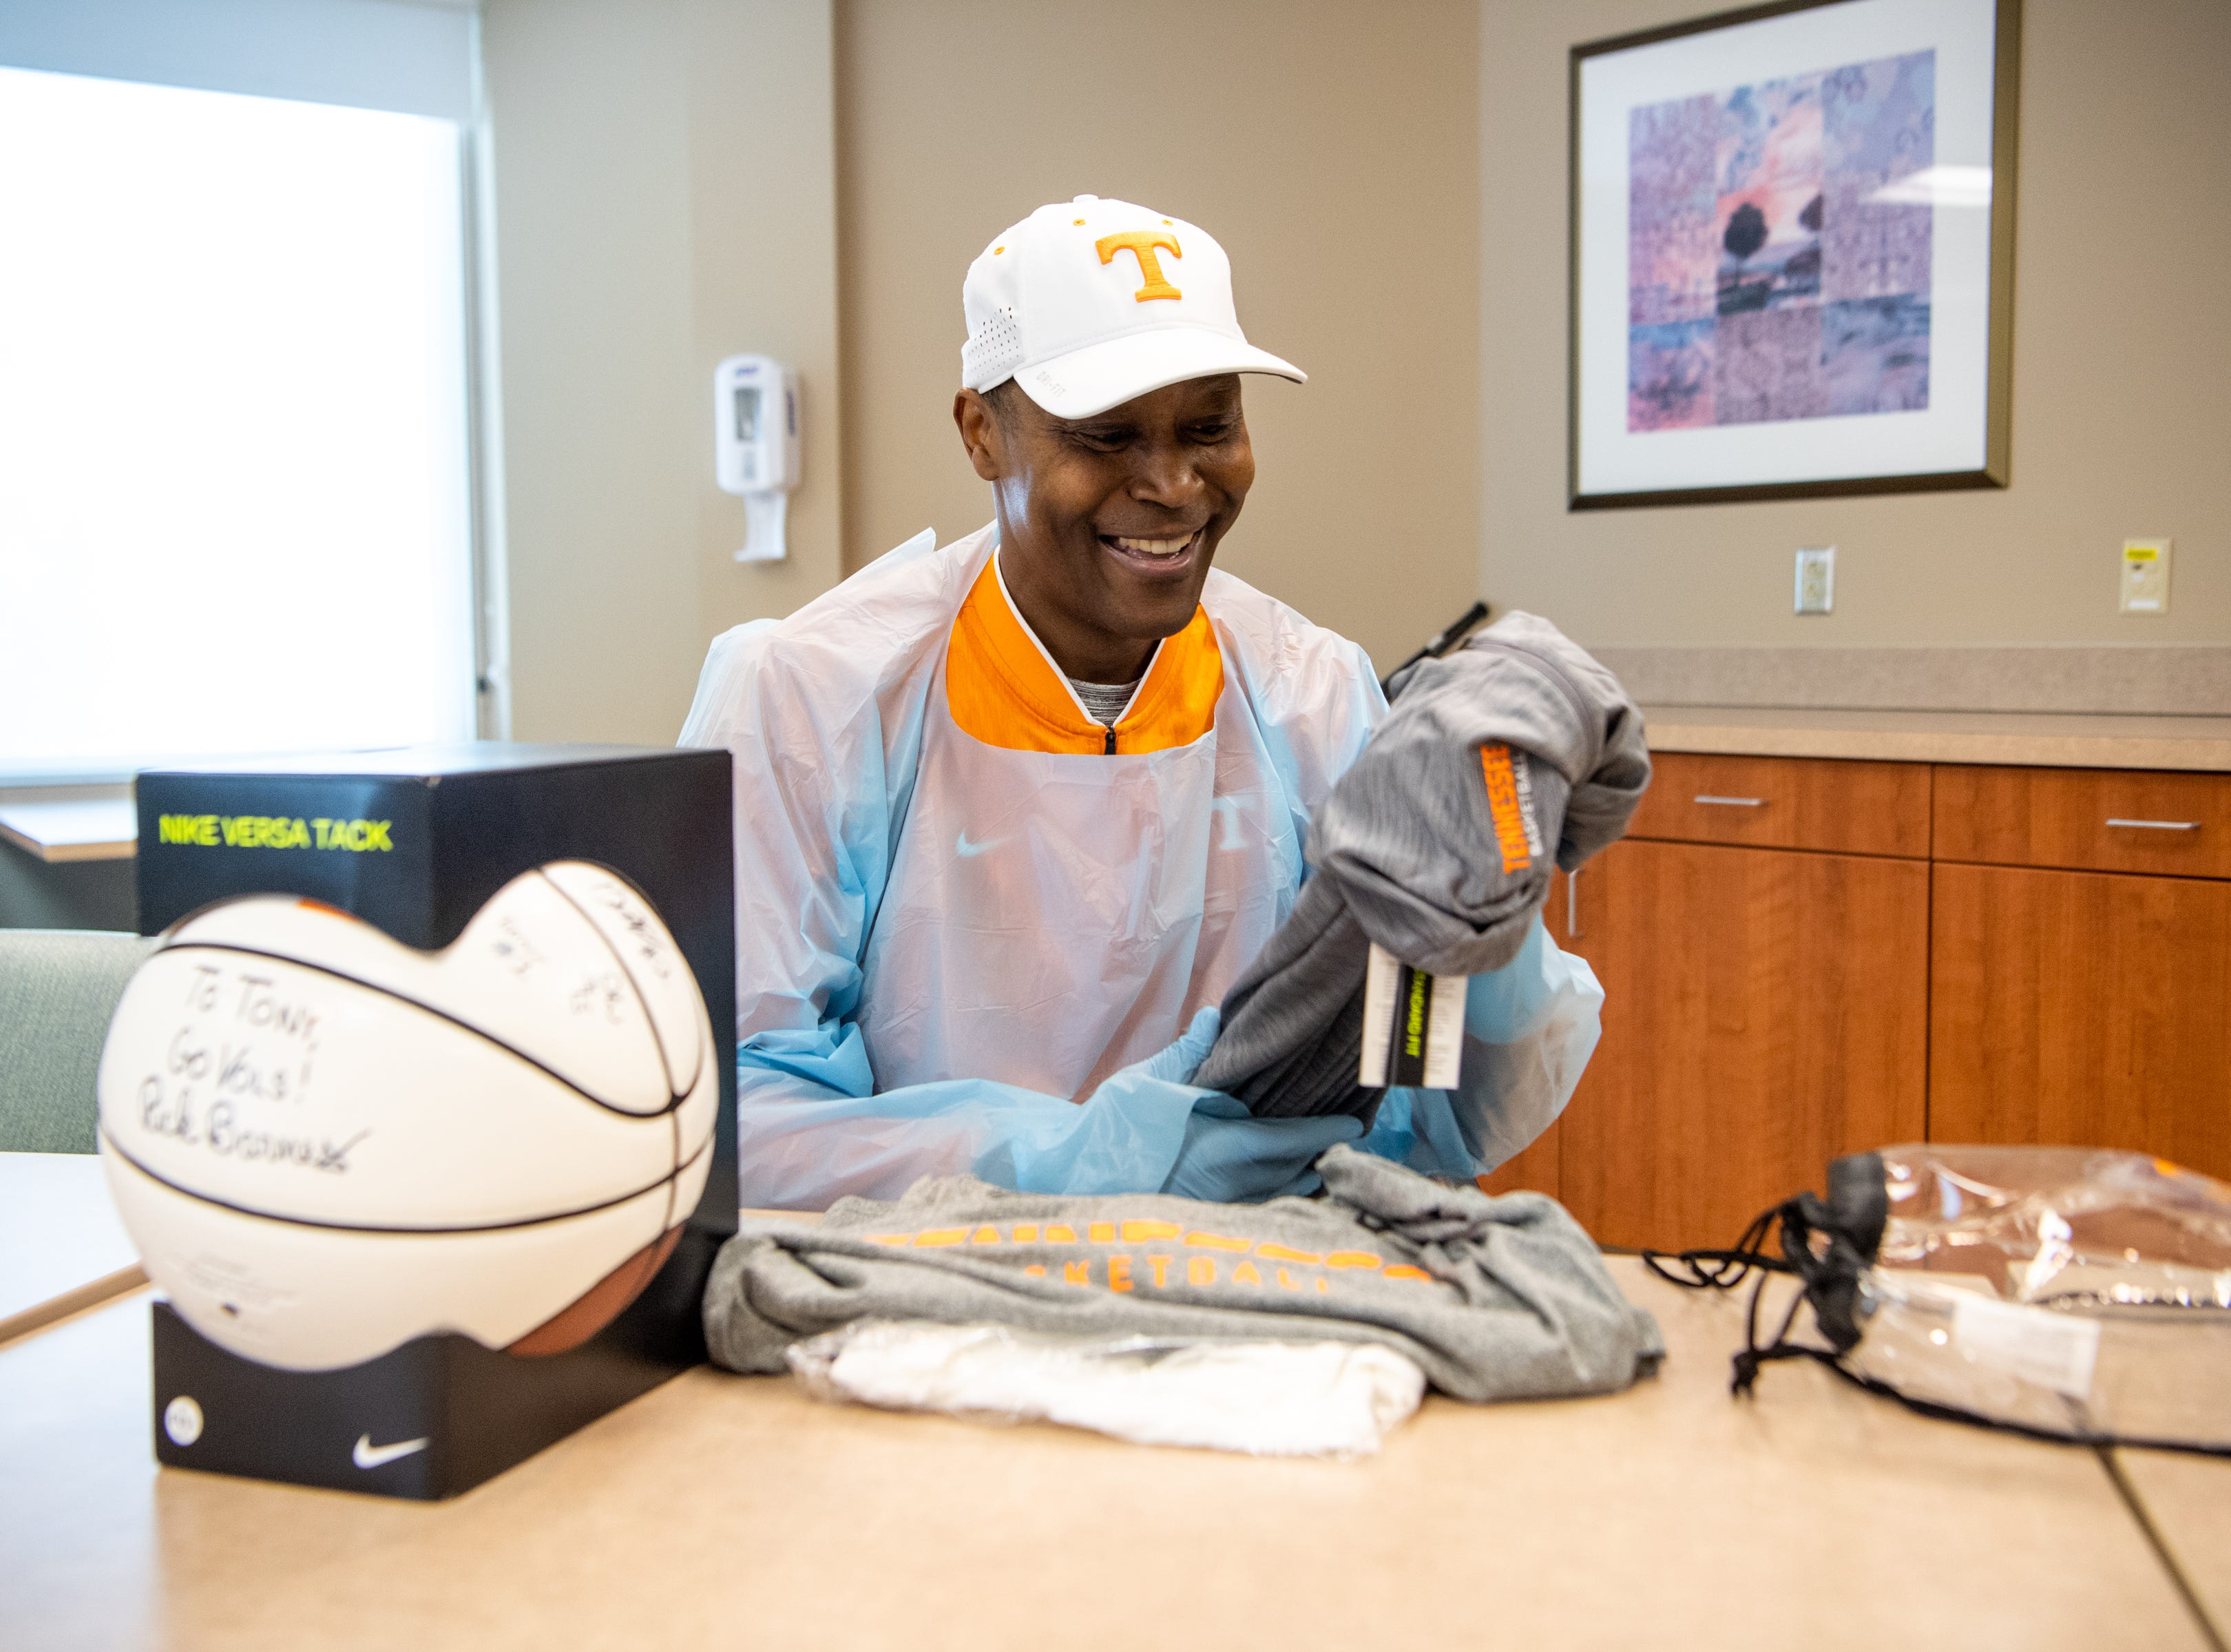 Former UT player Tony White, who is battling leukemia, holds up the jacket he received from the Tennessee Volunteers men's basketball team at Sarah Cannon Cancer Institute at TriStar Centennial on Thursday, March 14, 2019, in Nashville, Tenn.